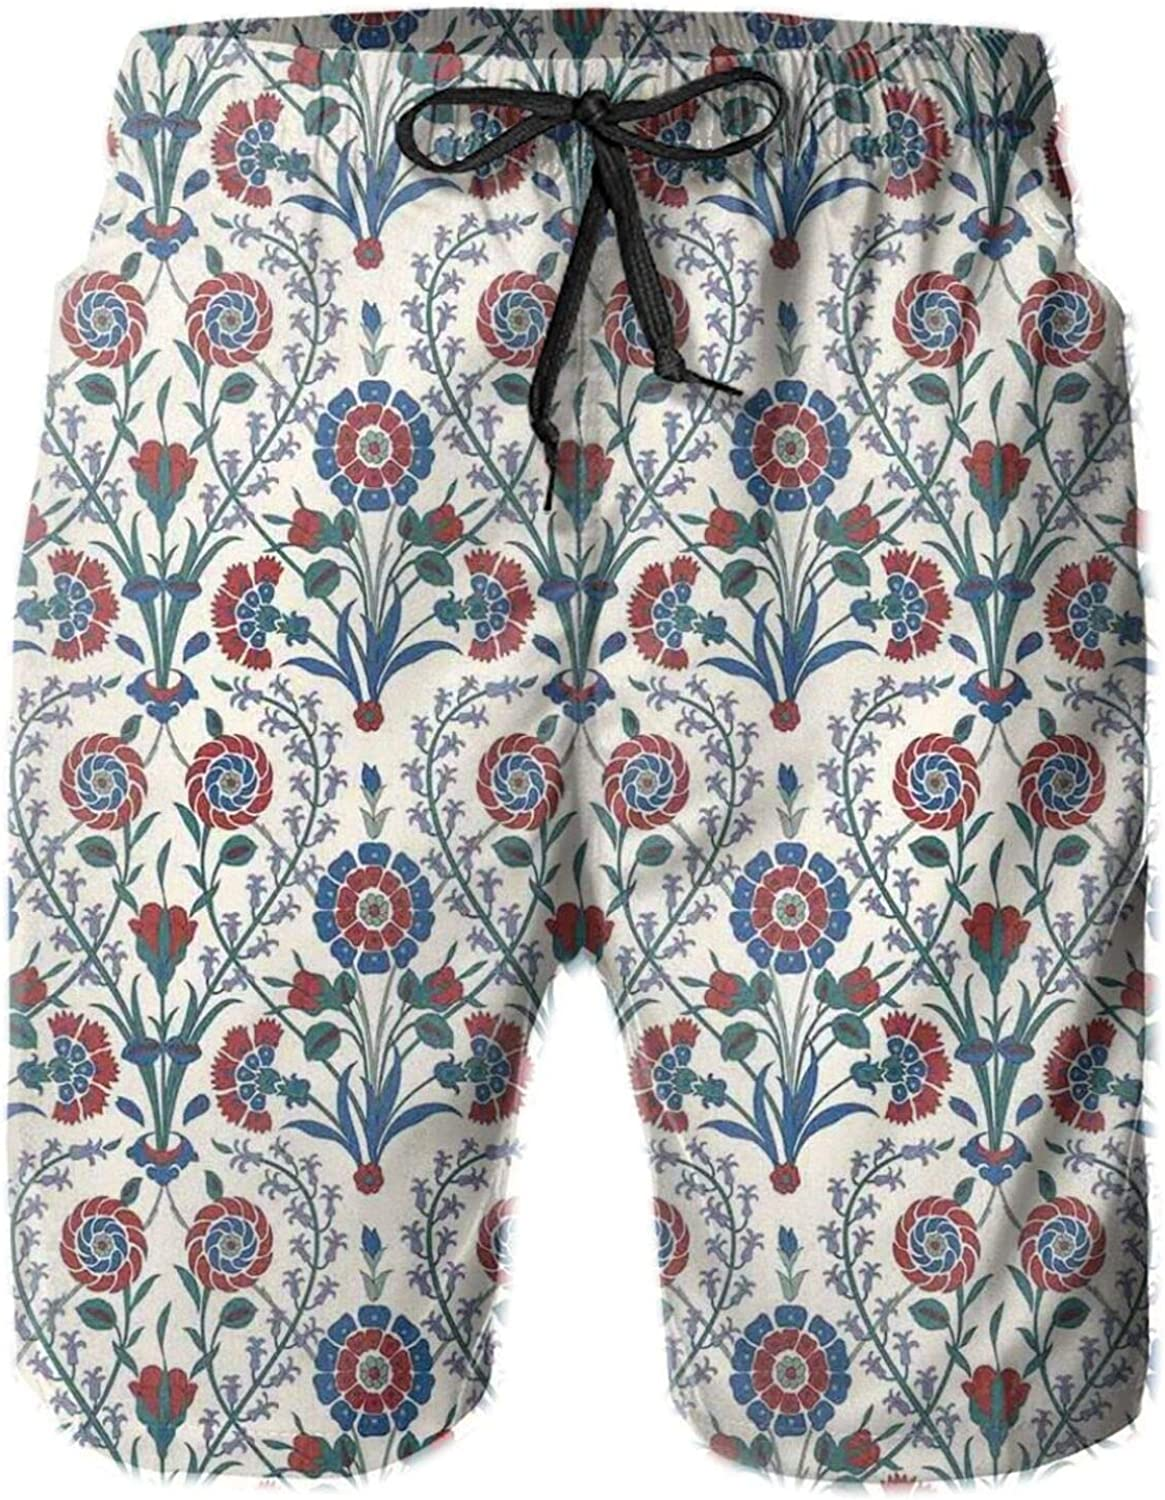 Old Ethnic Floral Ornament Pattern with Swirled Florets and Leaf Turkish Artwork Mens Swim Shorts Casual Workout Short Pants Drawstring Beach Shorts,XXL